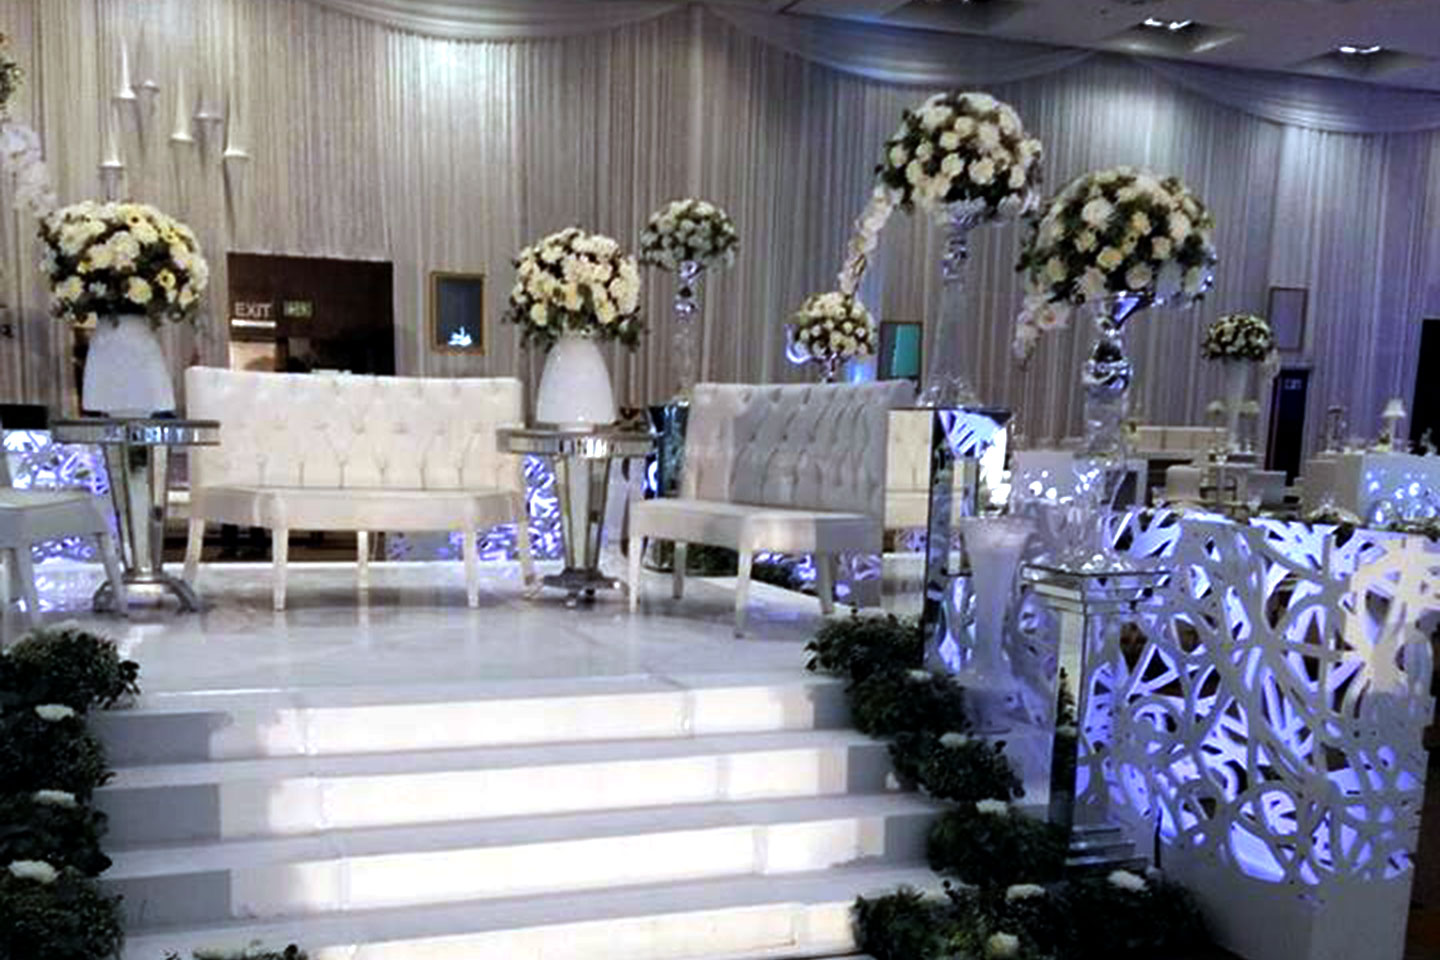 Decor4u corpate and wedding events cape town and johannesburg wedding celebrations wedding events junglespirit Image collections